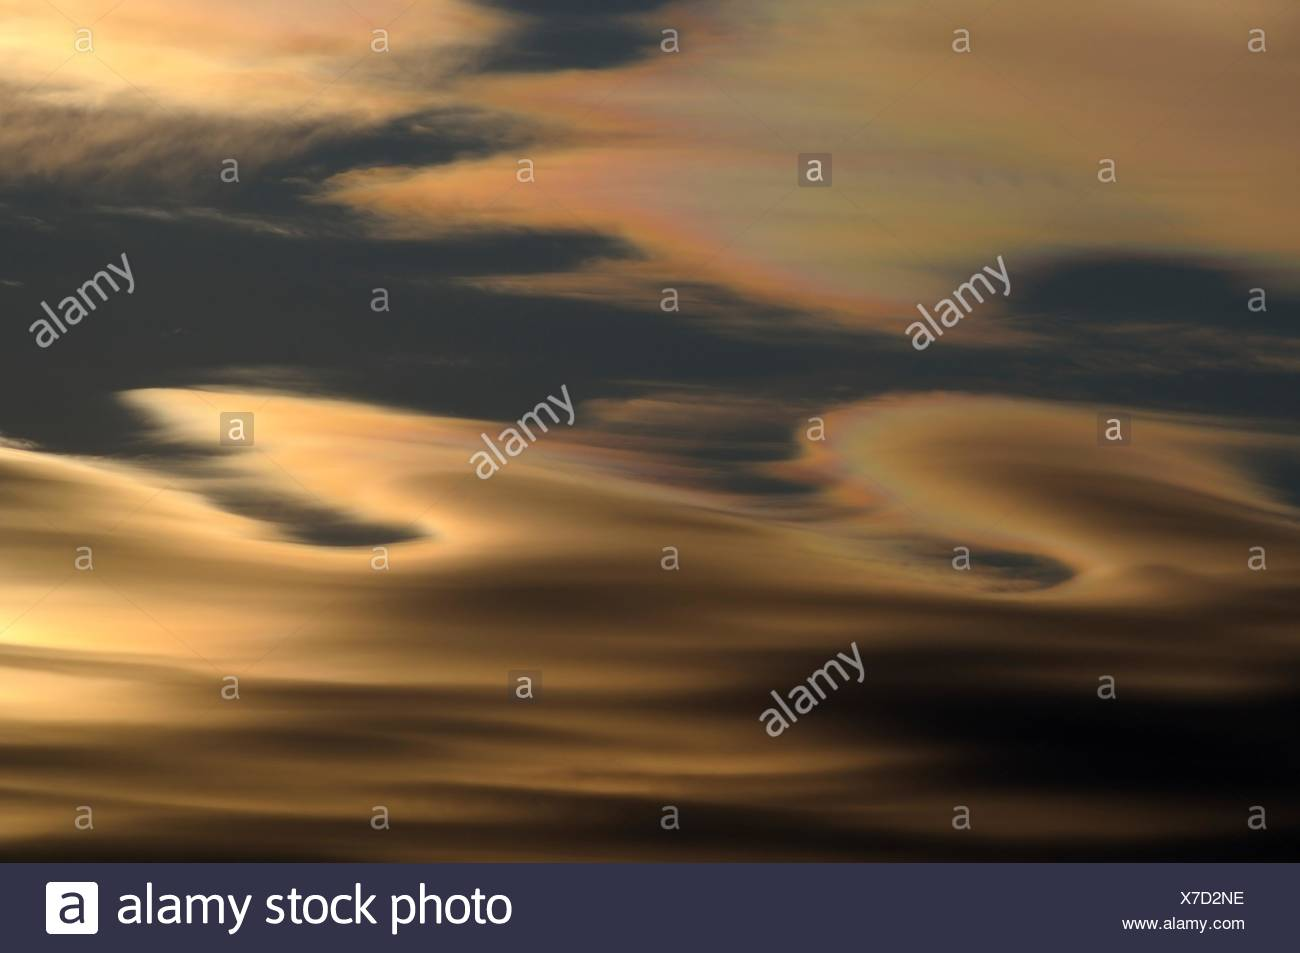 Altocumulus lenticularis clouds with rainbow colors at sunset Stock Photo